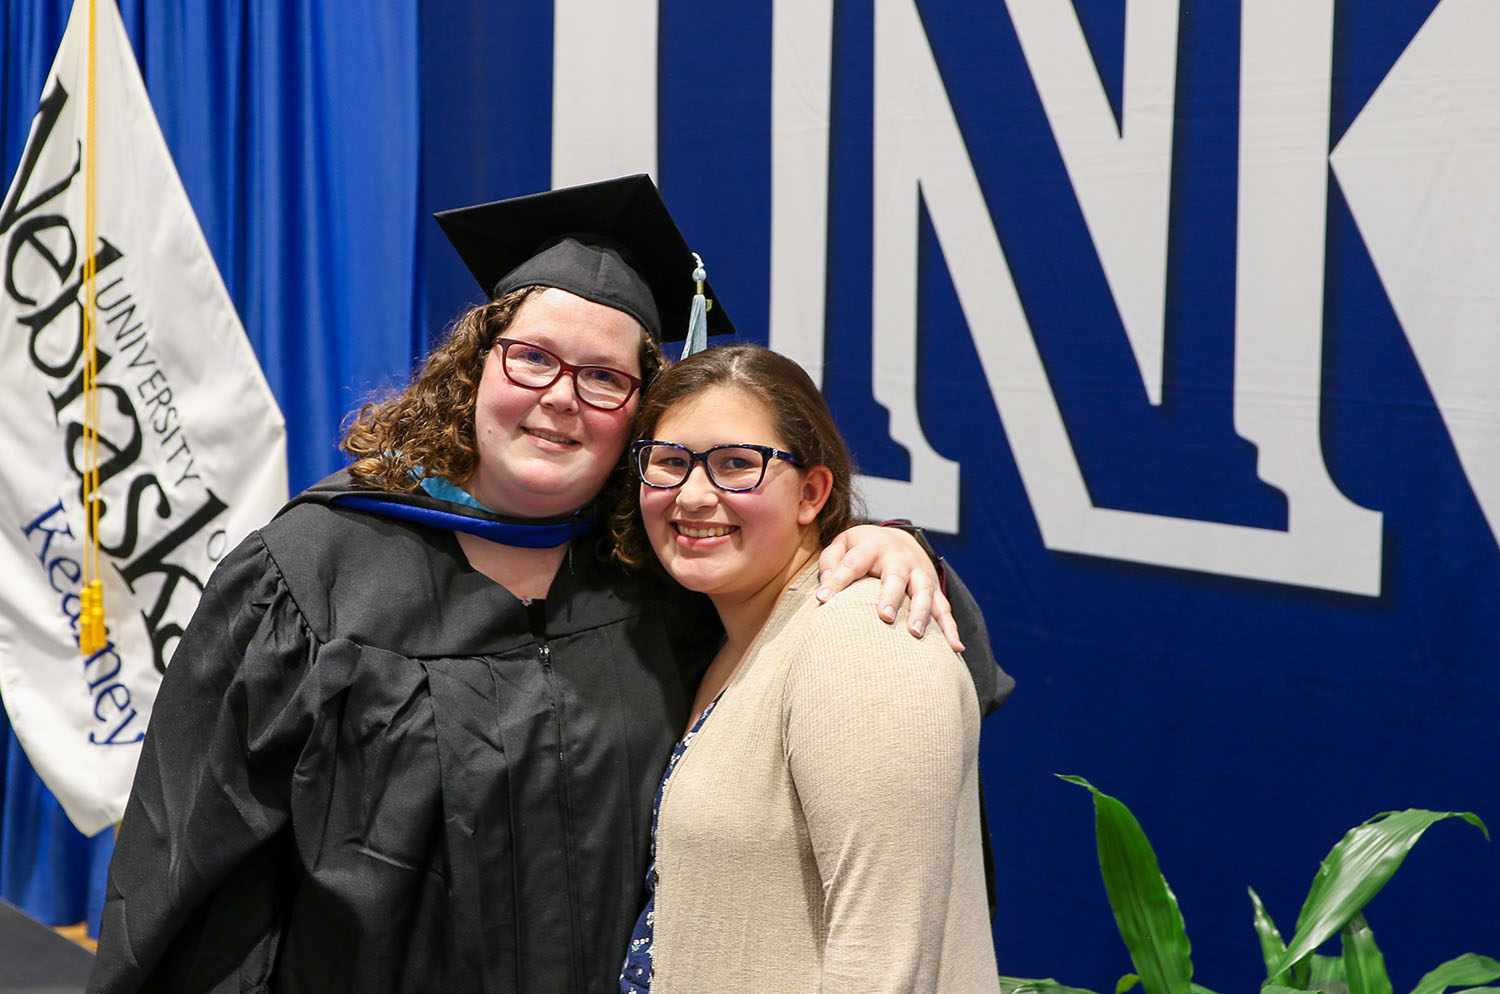 Alecia Amezcua of Madison, left, poses for a photo with her daughter Ariana following Thursday's commencement ceremony at the University of Nebraska at Kearney. Amezcua graduated from UNK with a master's degree in Spanish education. (Photos by Todd Gottula, UNK Communications)